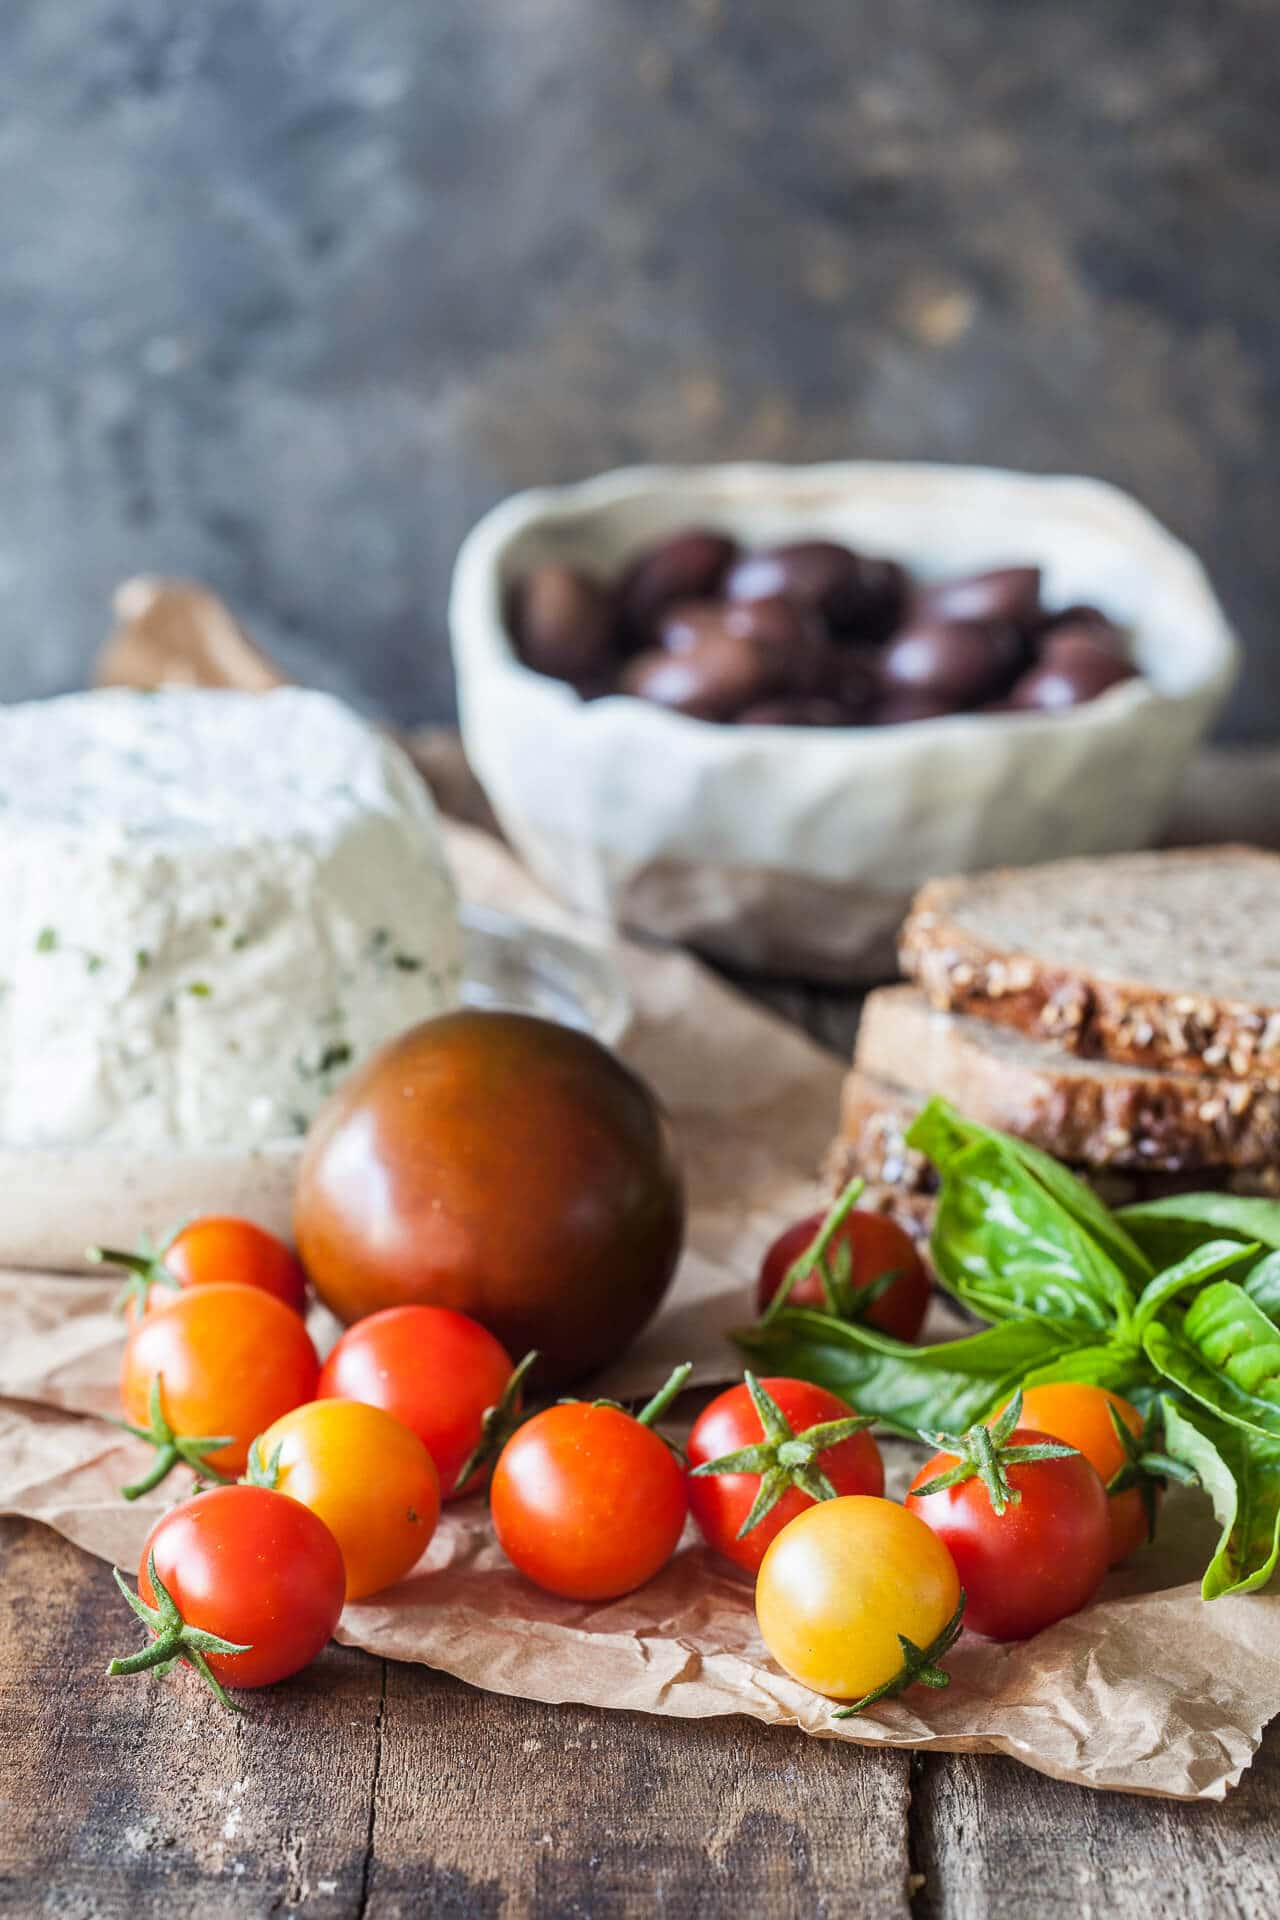 Tomato Wholewheat Sandwiches with Goat's Milk Ricotta are the perfect savory breakfast or a quick snack. Vegetarian and delicious!   Vibrant Plate